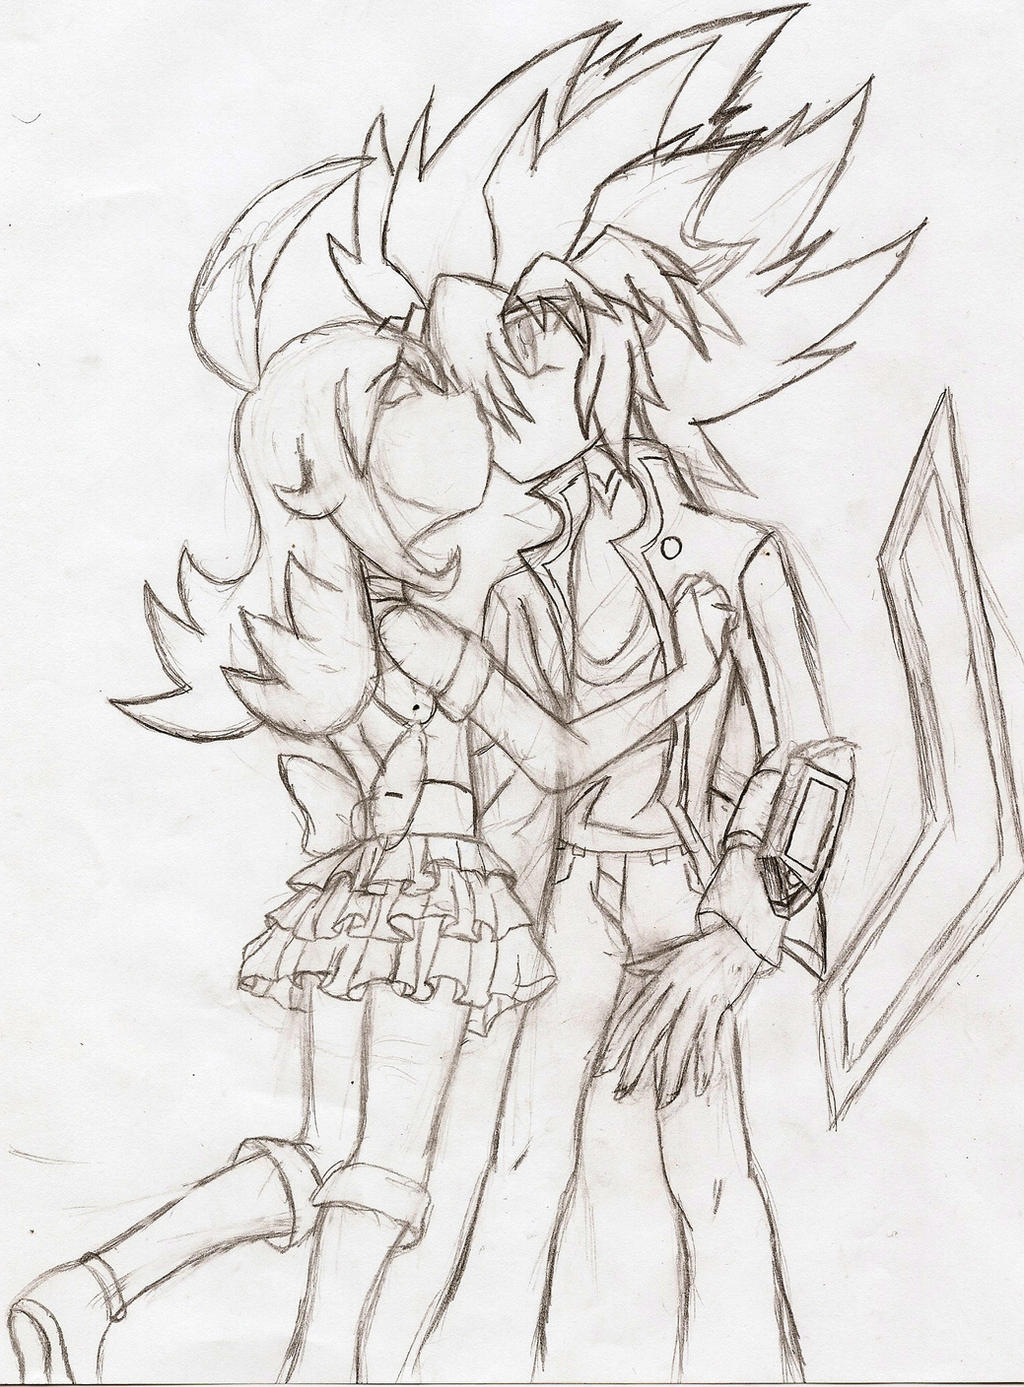 Arc-V: The Kiss that started it all~ by NeonNeoz